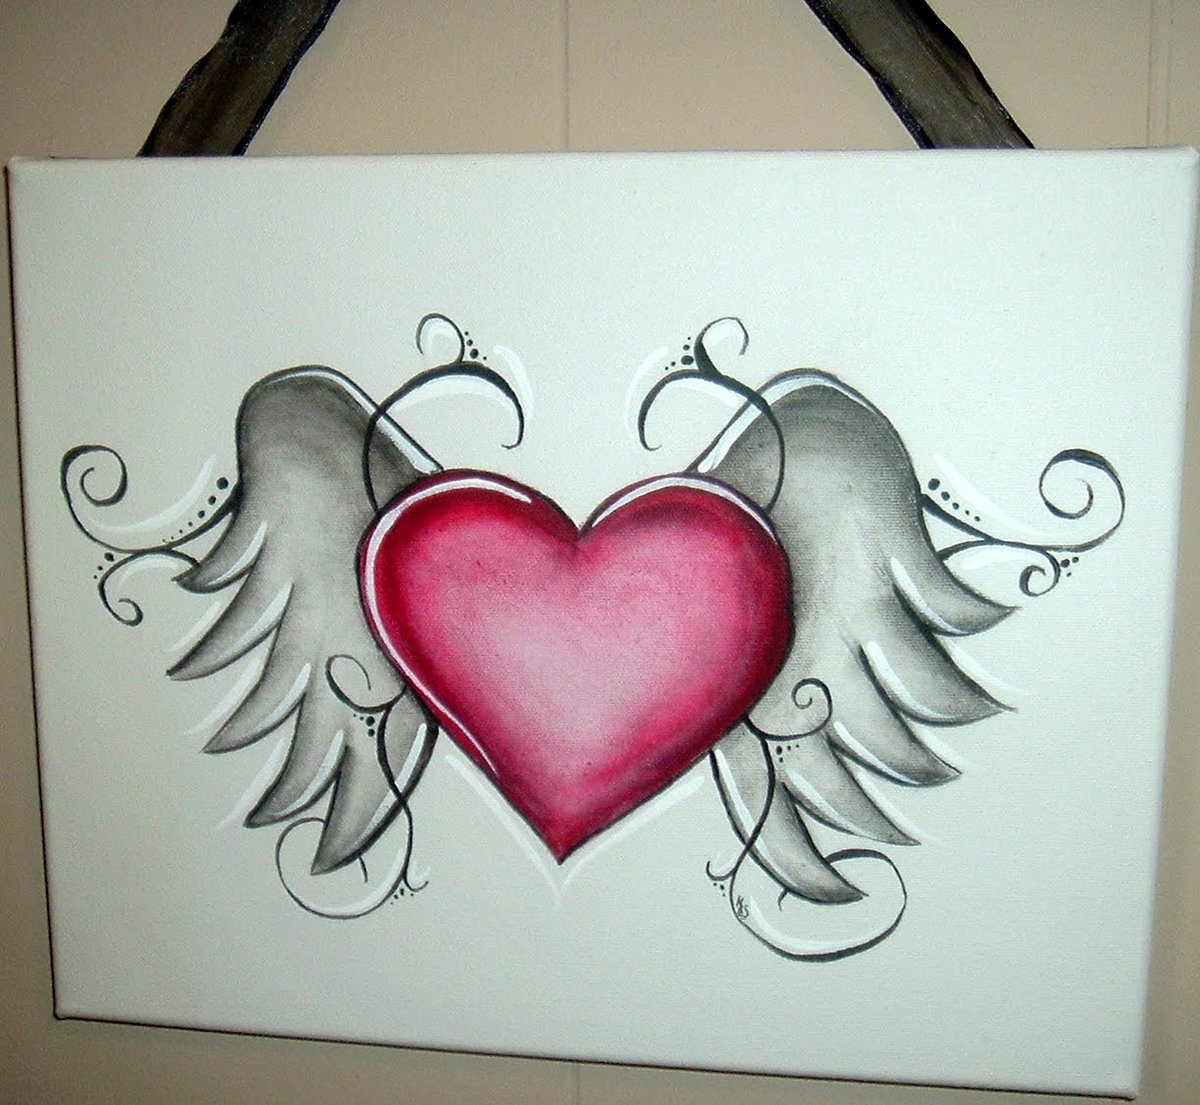 Pencil pictures of hearts pencil sketch heart pencil drawings of hearts with wings and banners